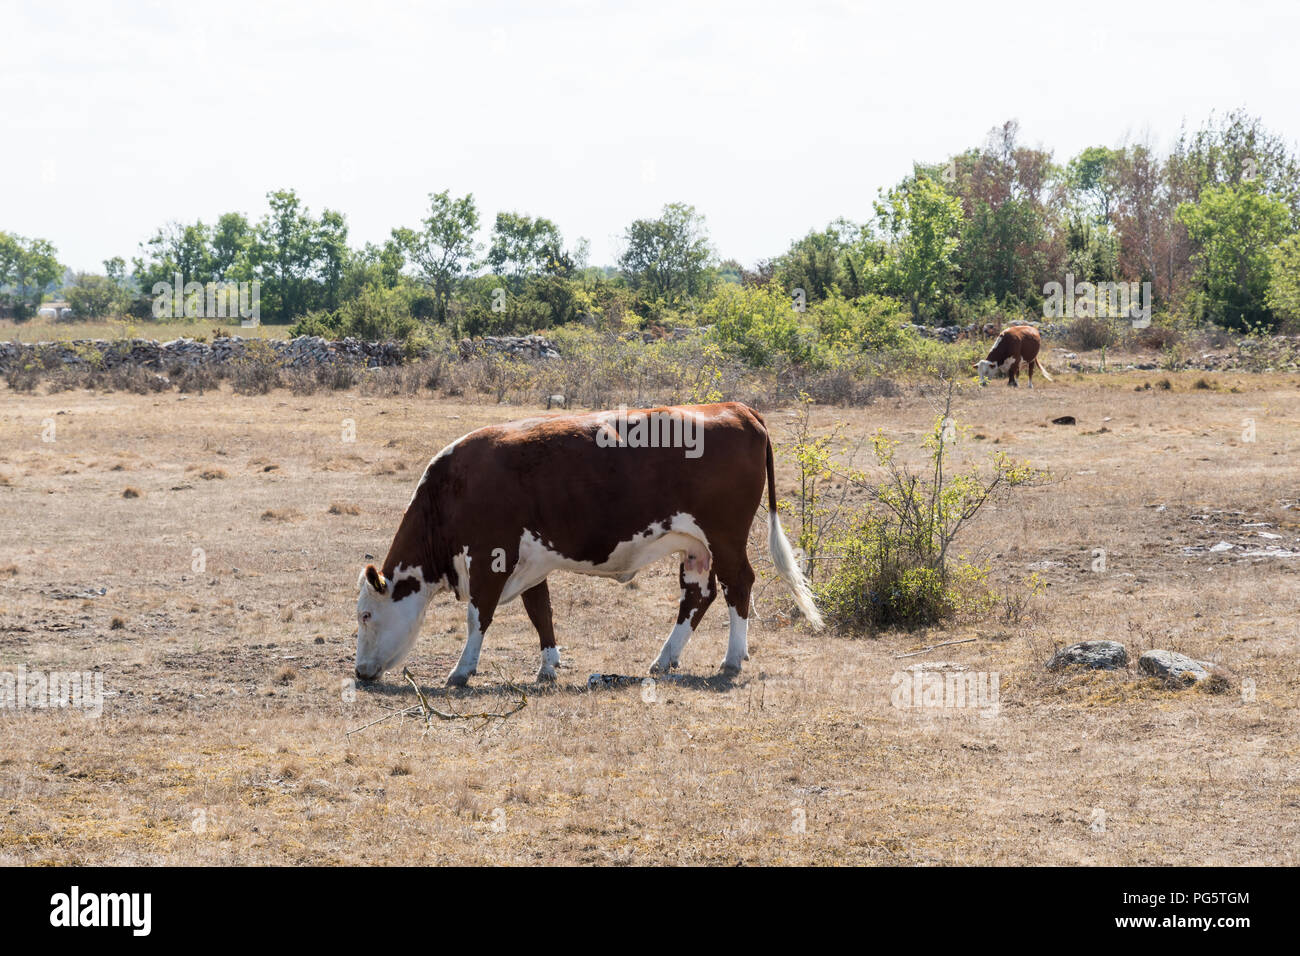 Grazing cattle in a dried grassland at the swedish island Oland - Stock Image